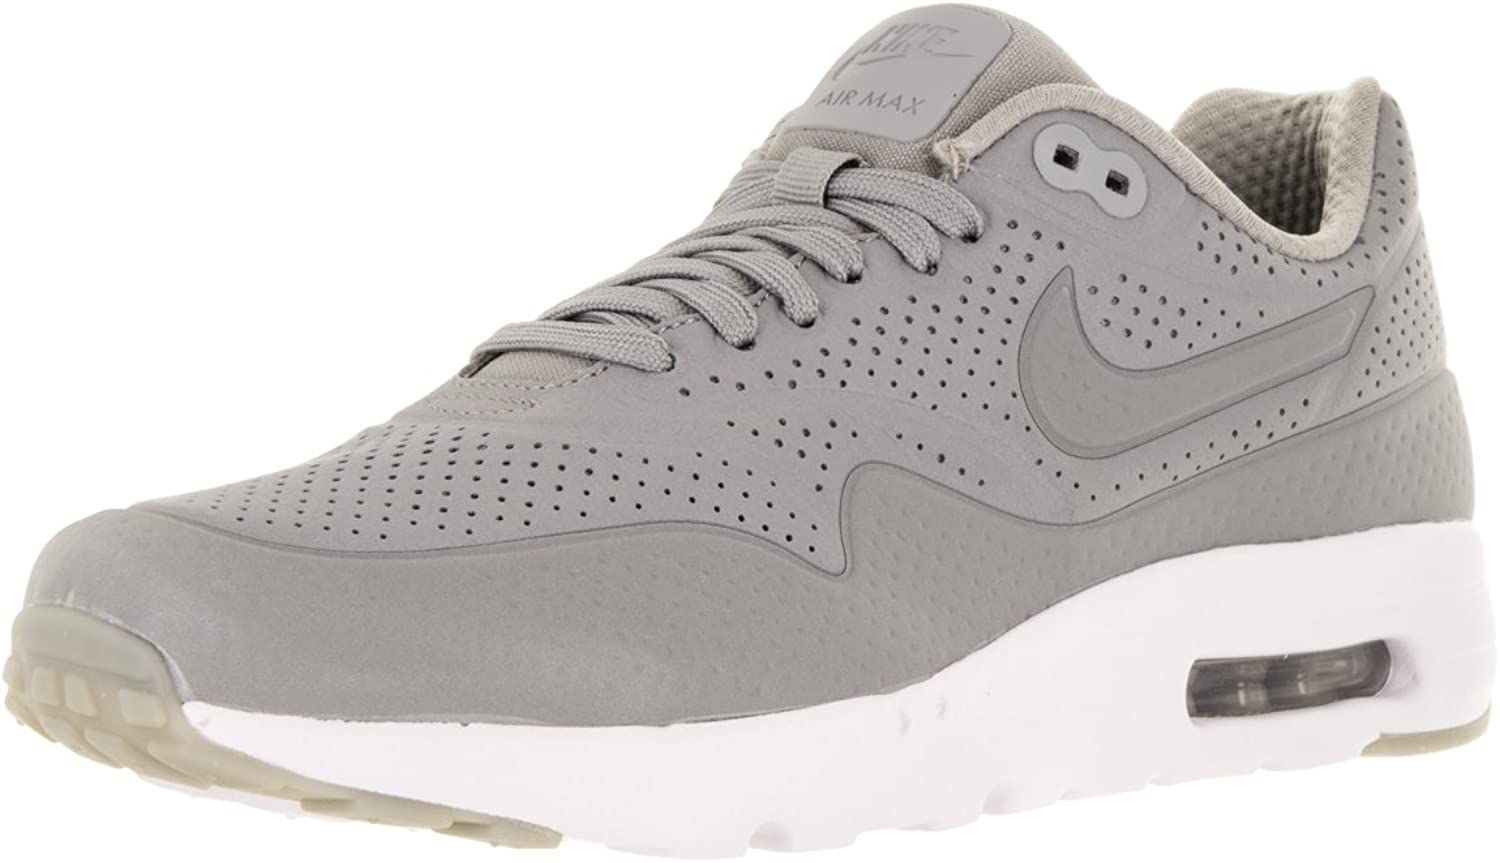 Nike Men's Air Max 1 Ultra Moire Sports Running shoes